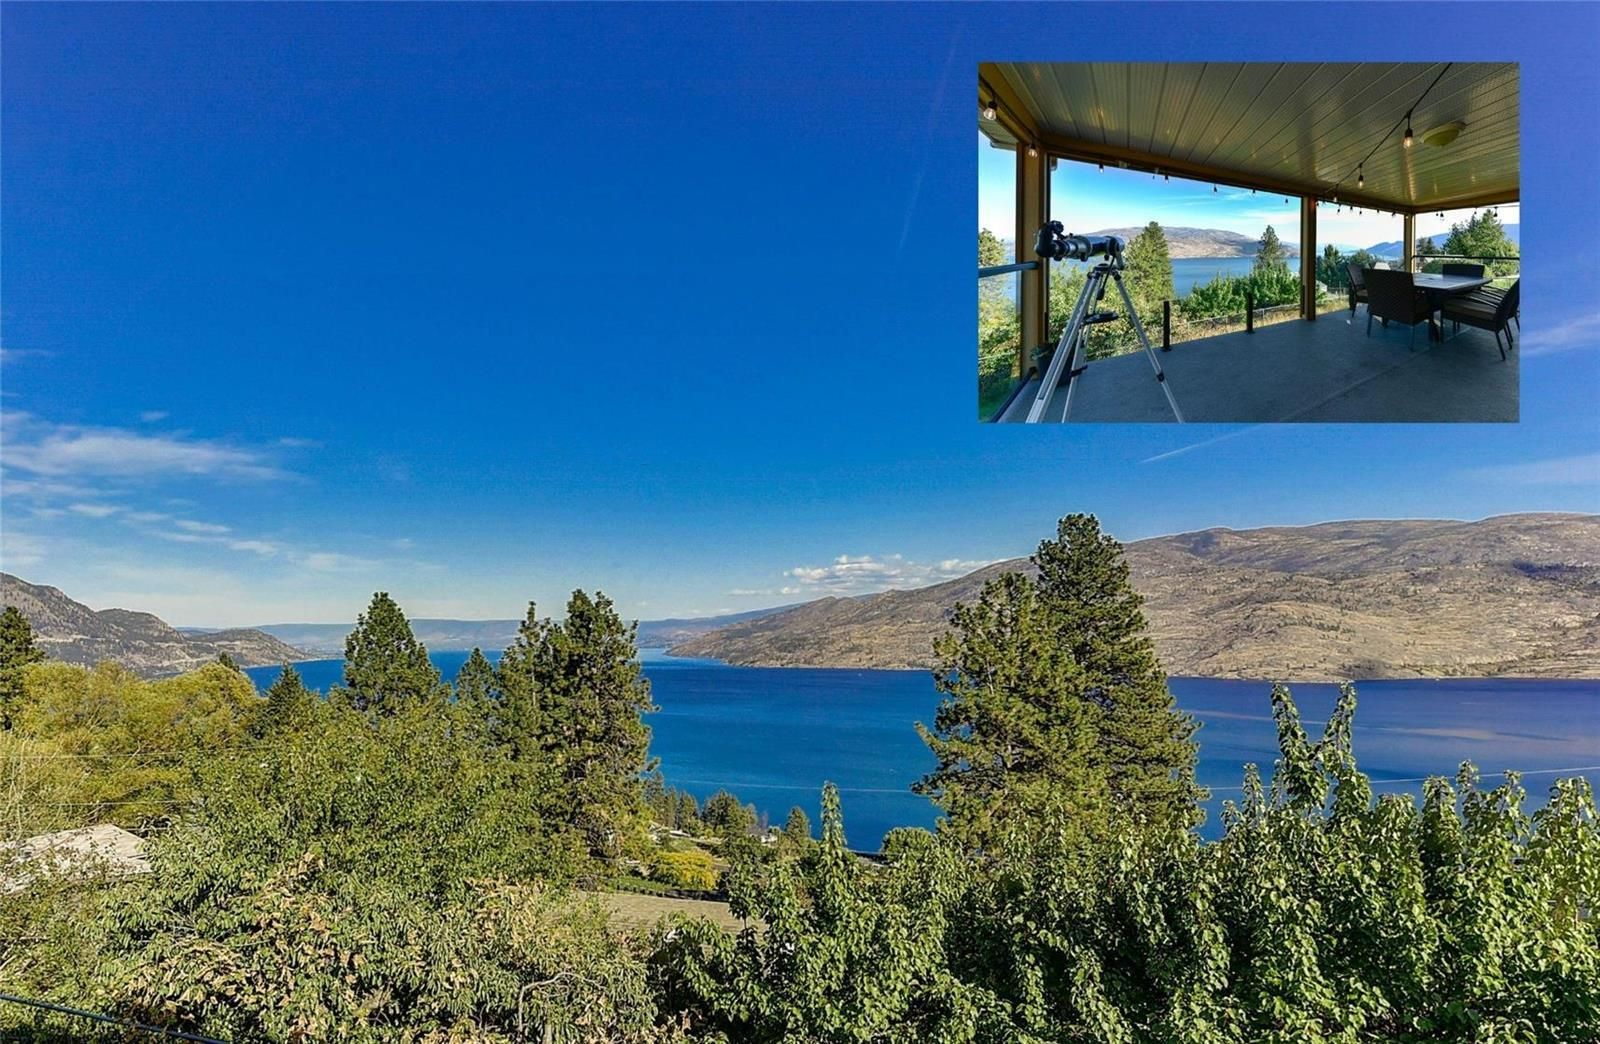 Main Photo: 6213 Whinton Crescent, in Peachland: House for sale : MLS®# 10240890